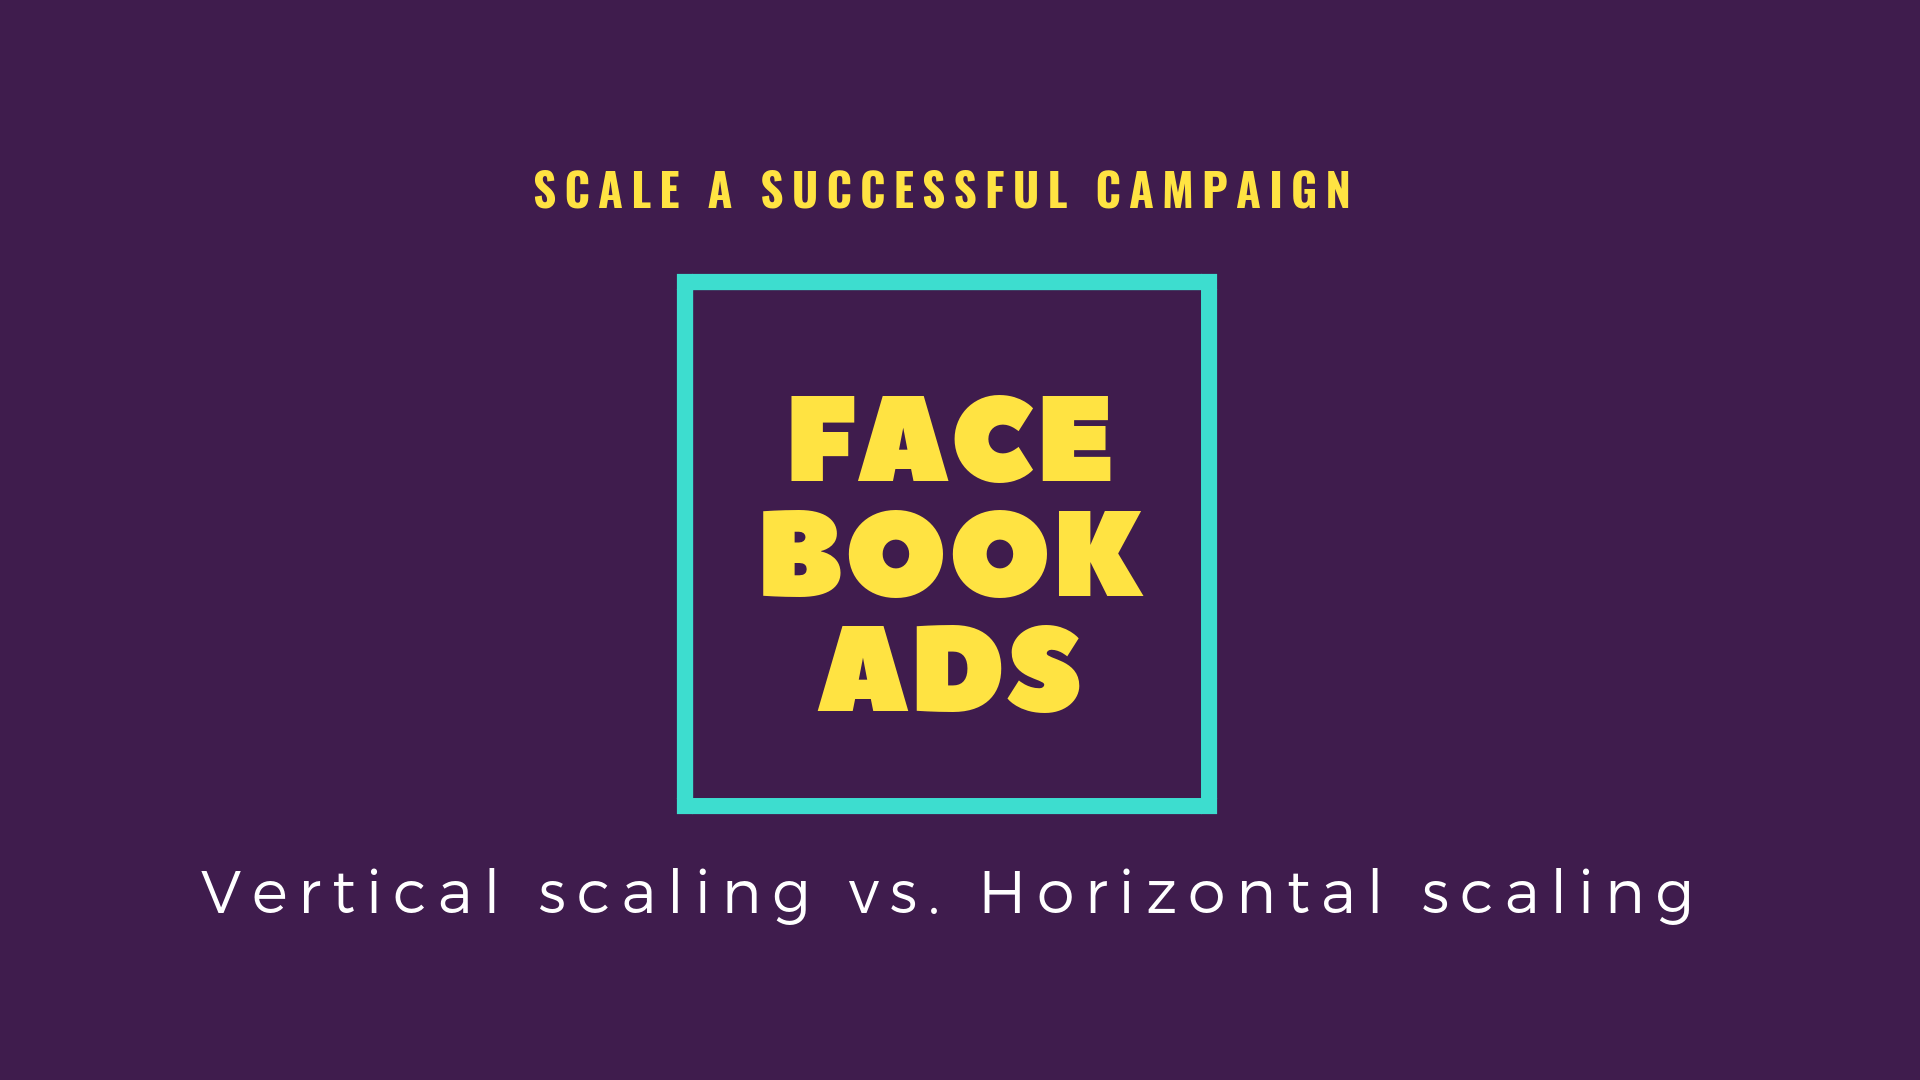 Scale a Successful Facebook Ads Campaign: Vertical Scaling vs. Horizontal Scaling